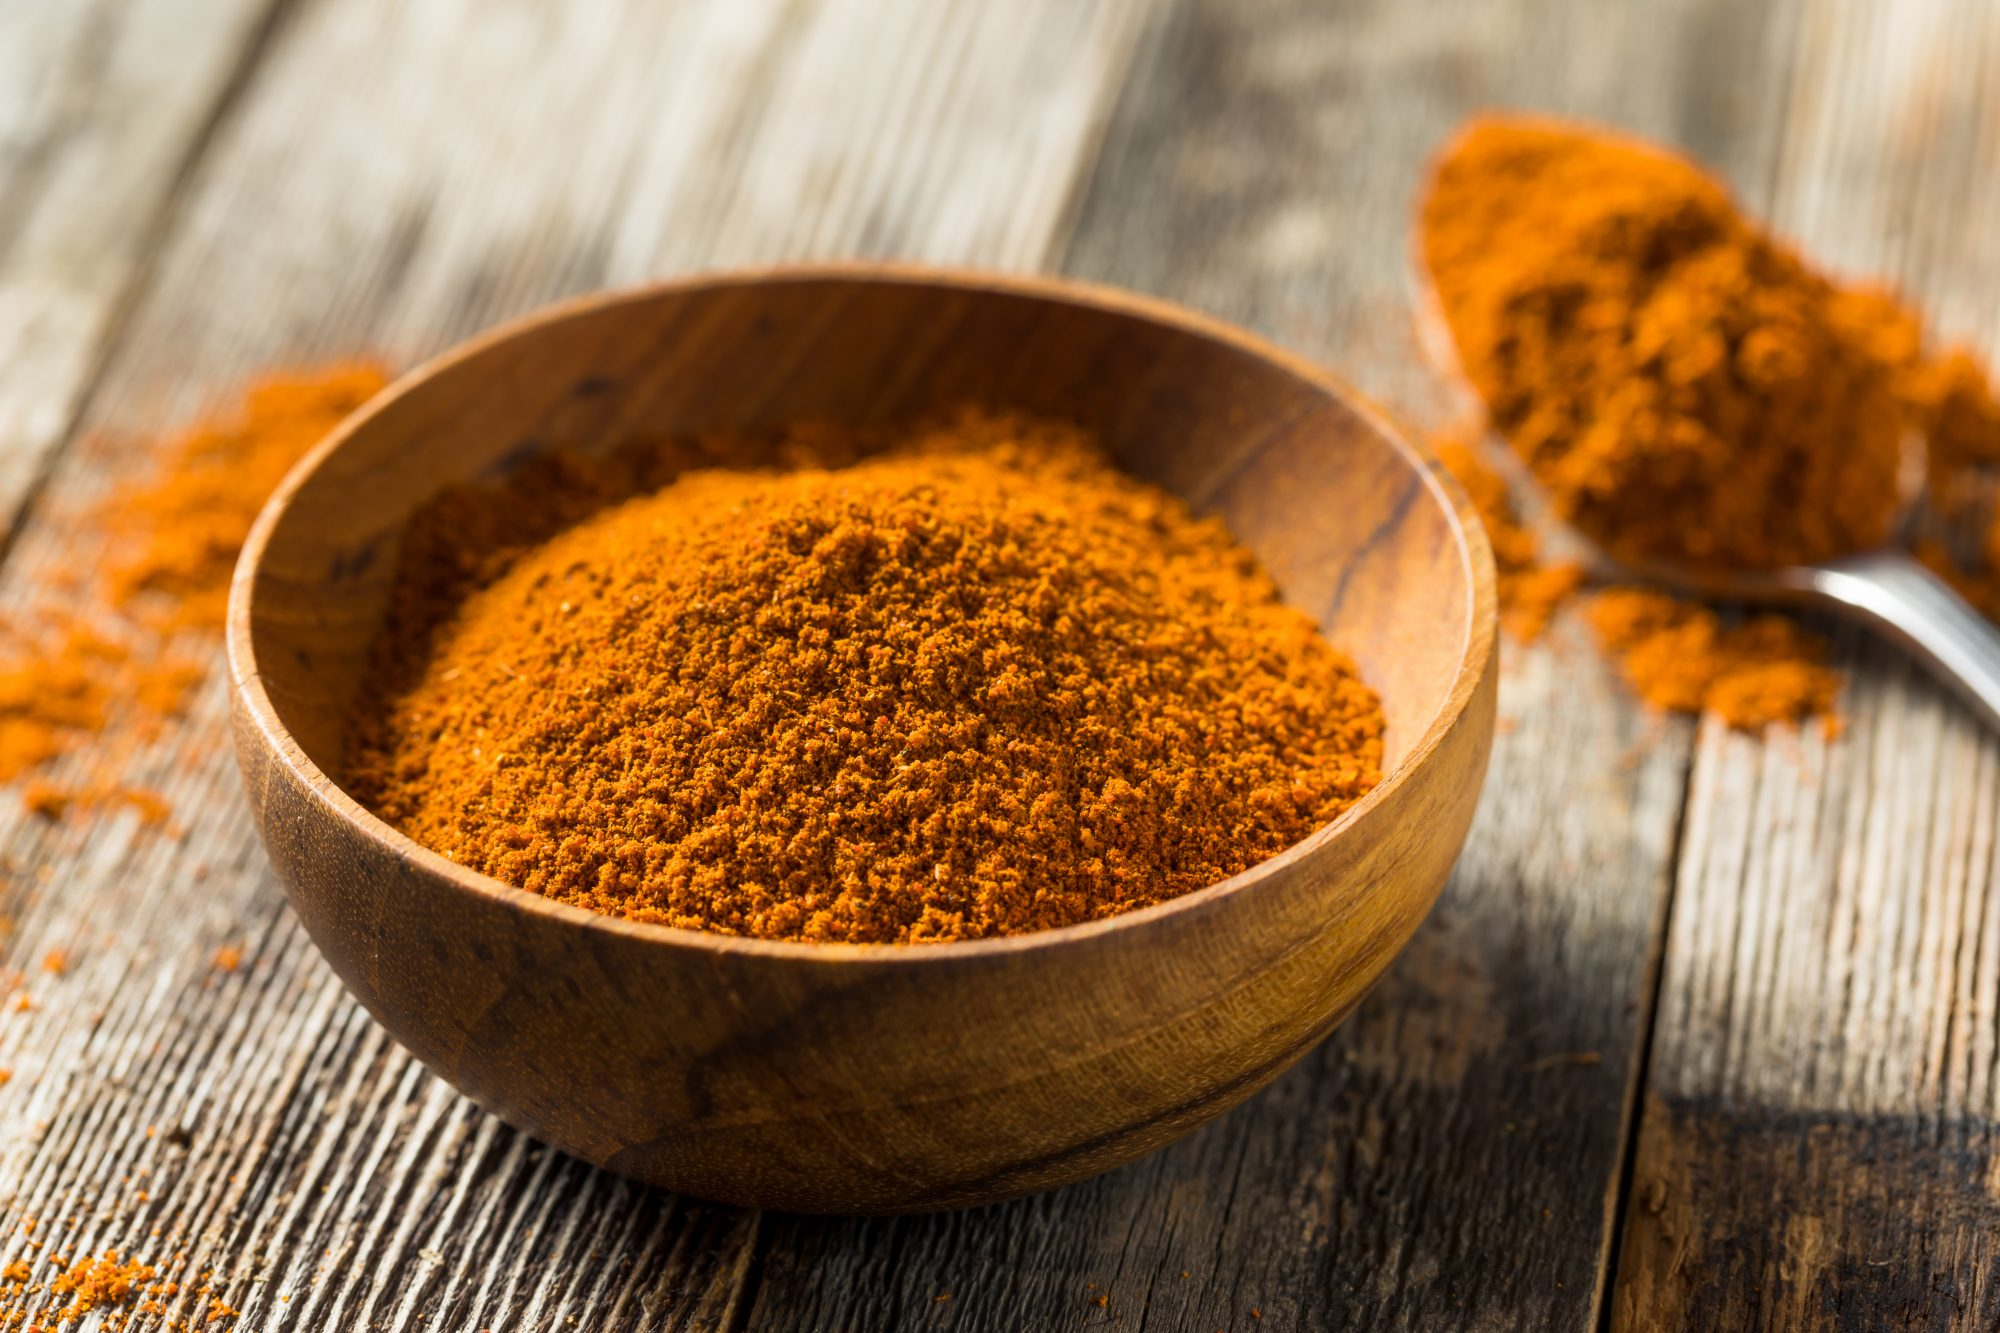 Spice Blend Getty 7/29/20